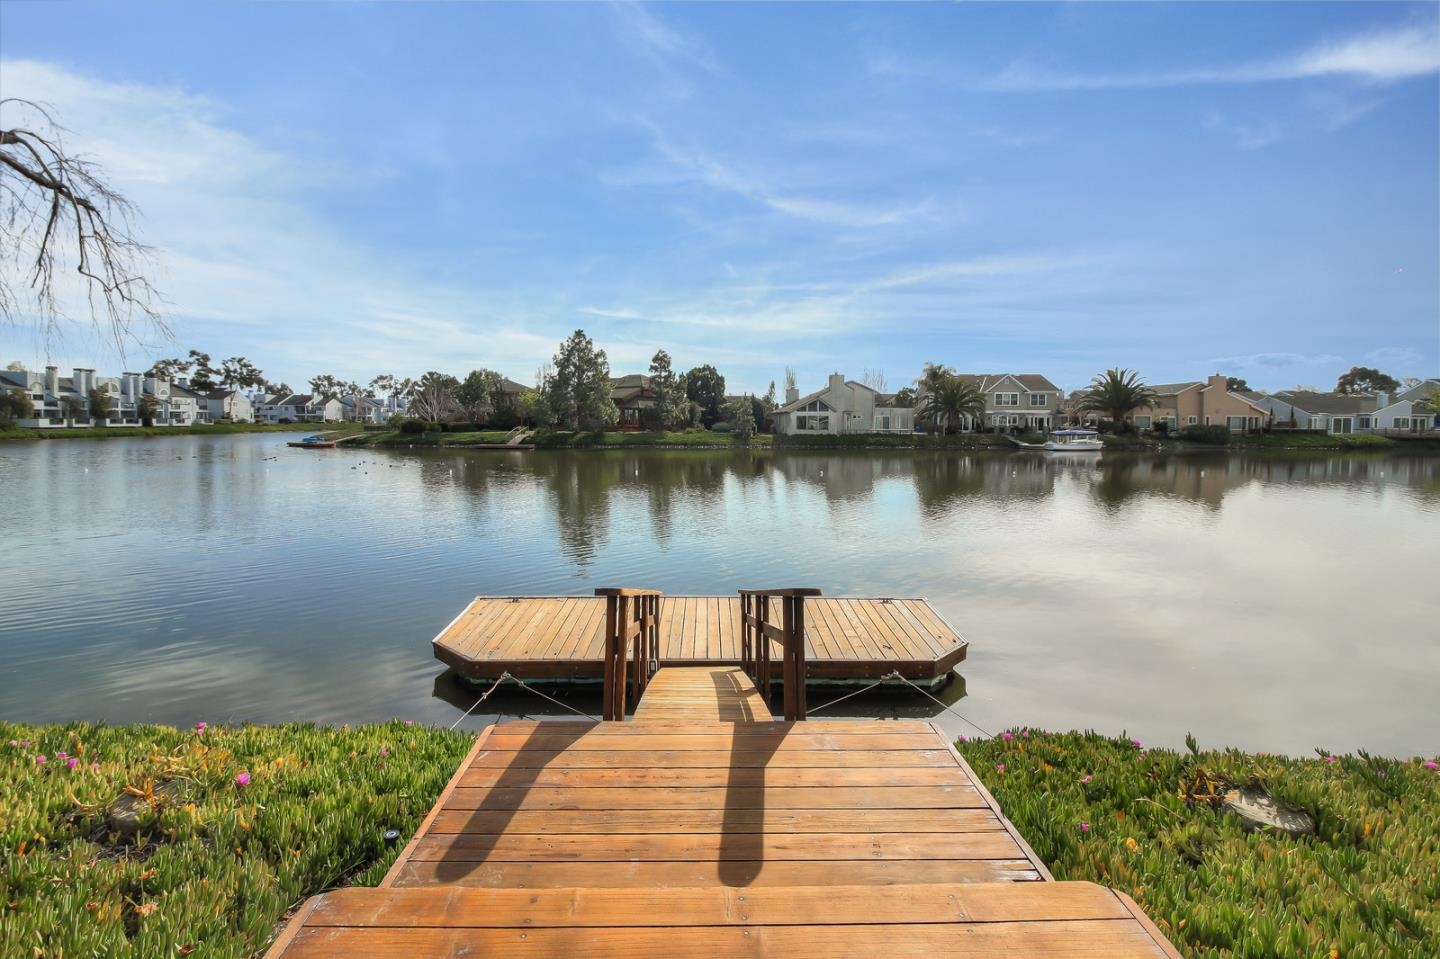 866 NEWPORT CIR, REDWOOD SHORES, CA 94065